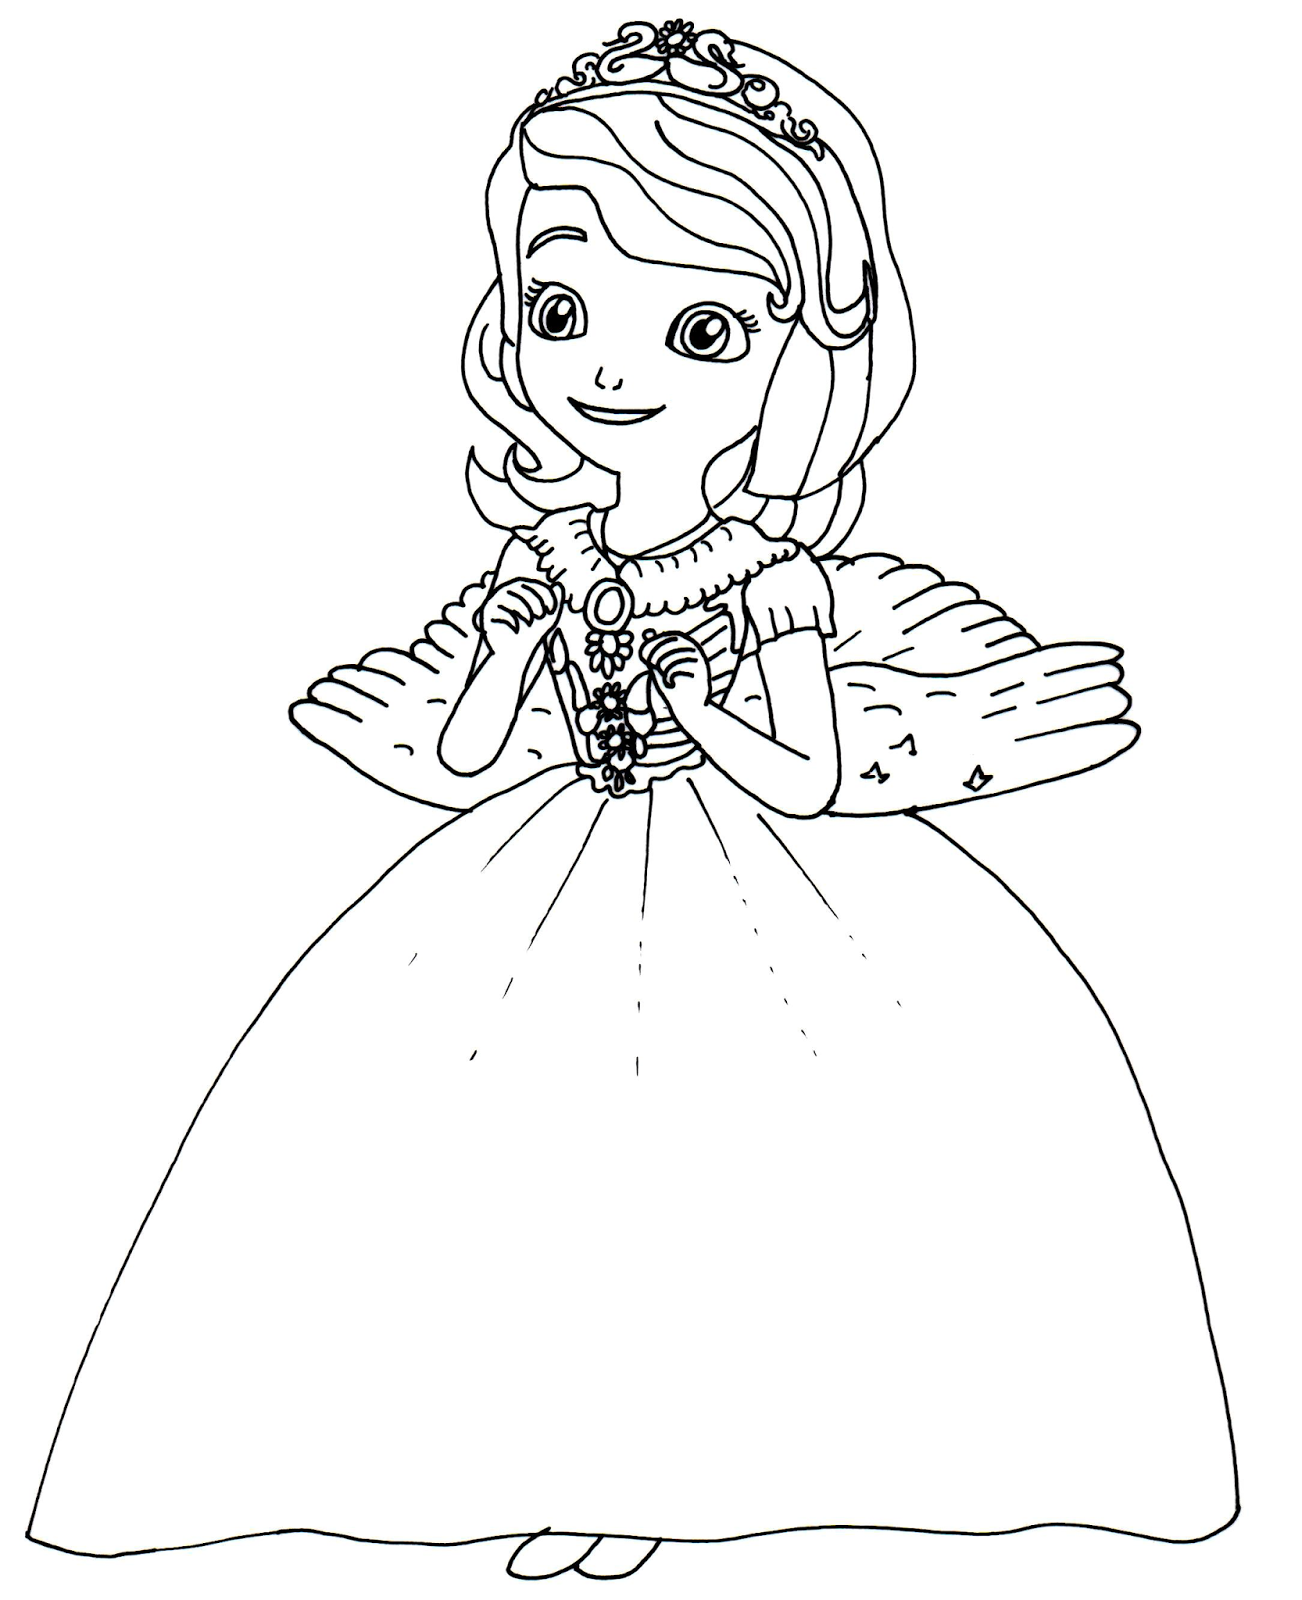 Sofia The First Coloring Pages March 2014 Sofia The Princess Butterfly Free Coloring Sheets